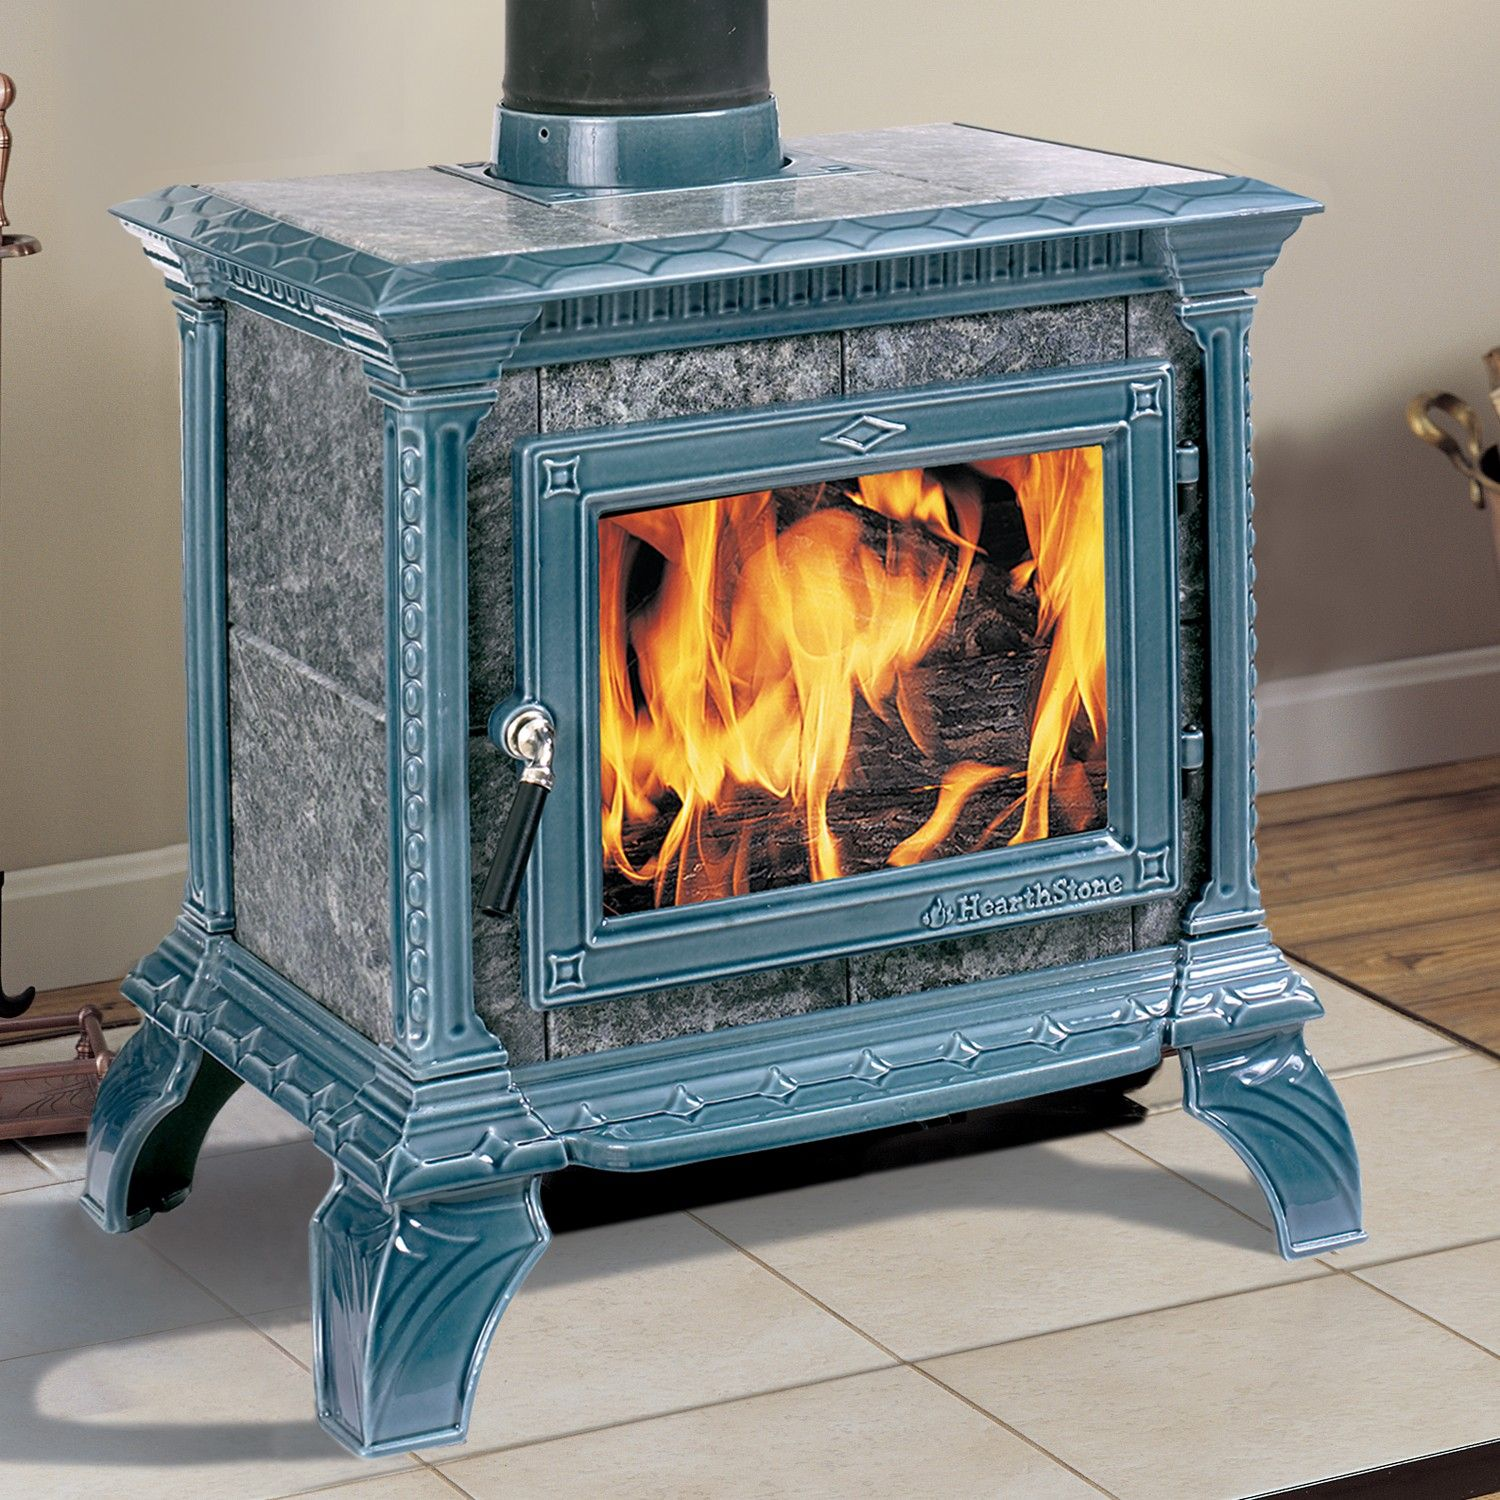 Hearthstone Tribute Soapstone Wood Stove 1k Sq Ft Burns 7 Hours Stays Hot For 9 For